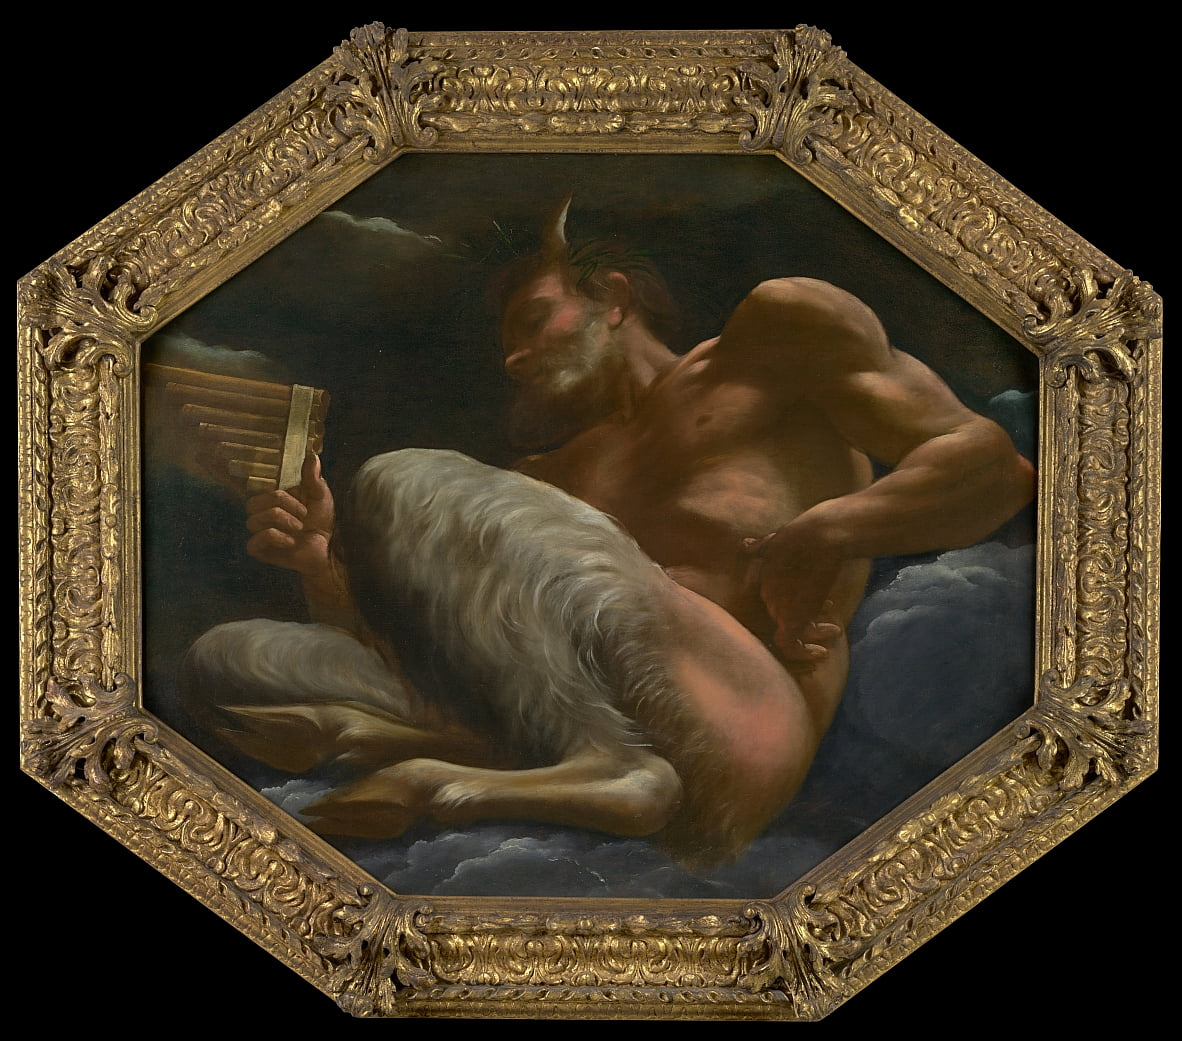 Pan by Annibale Carracci